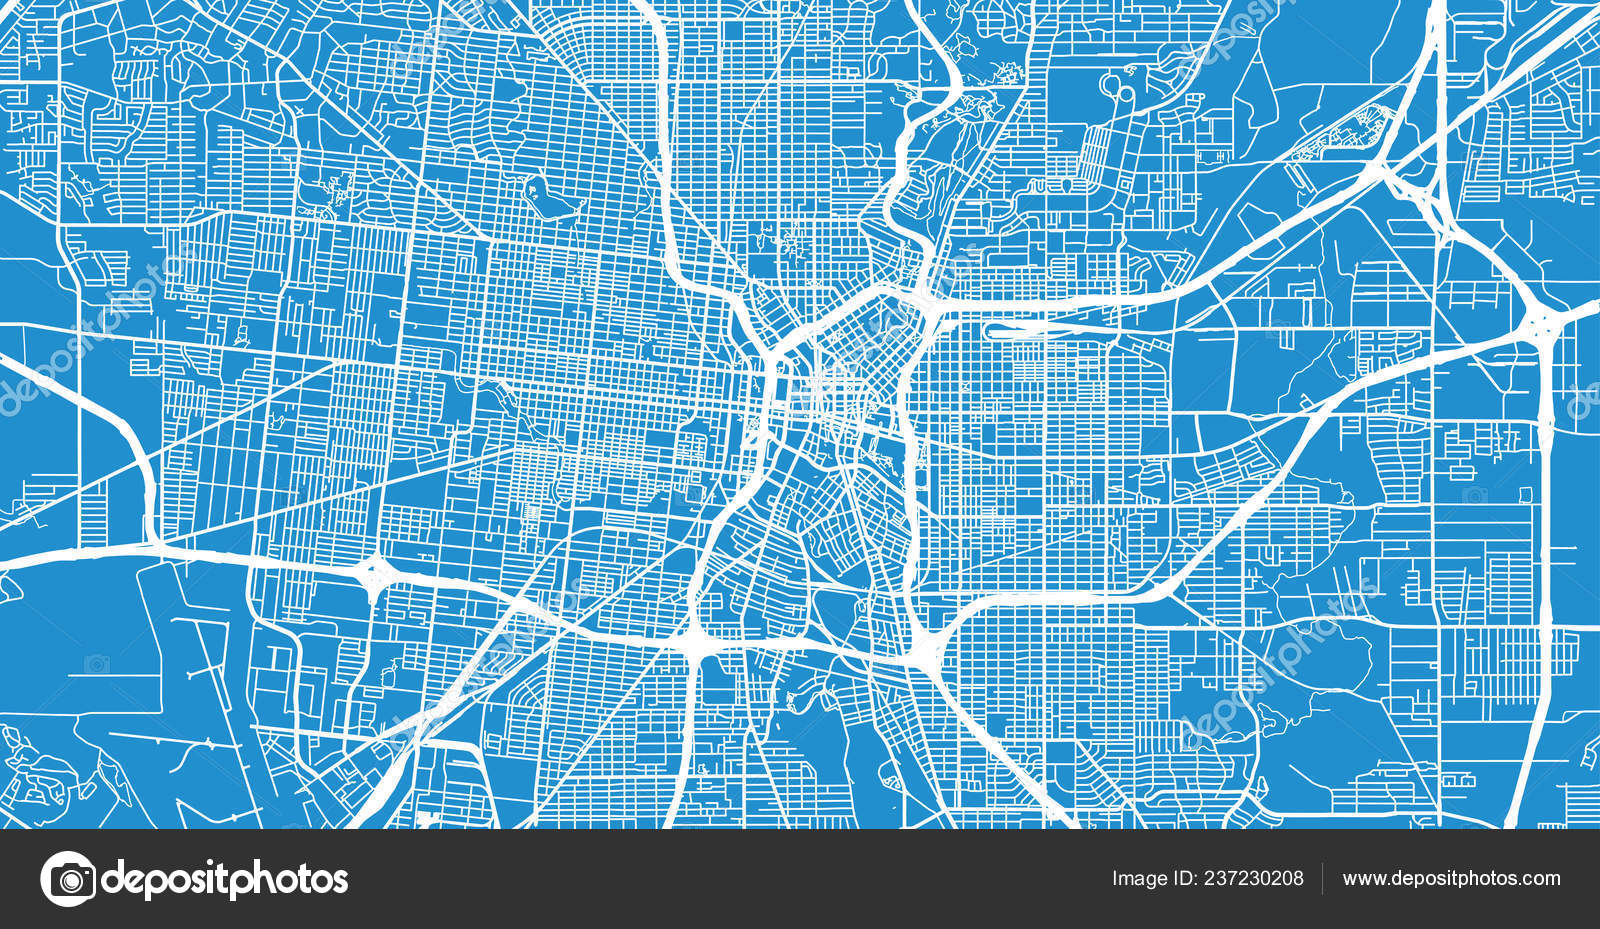 Urban Vector City Map San Antonio Texas United States ... on st. louis on us map, santa cruz on us map, chicago on us map, battle mountain on us map, cabo san lucas on us map, ferguson on us map, santa fe on us map, harrisburg on us map, durham on us map, new orleans on us map, natchitoches on us map, allentown on us map, newport on us map, alamo on us map, tulsa on us map, pierre on us map, gatlinburg on us map, south bend on us map, jackson on us map, denver on us map,